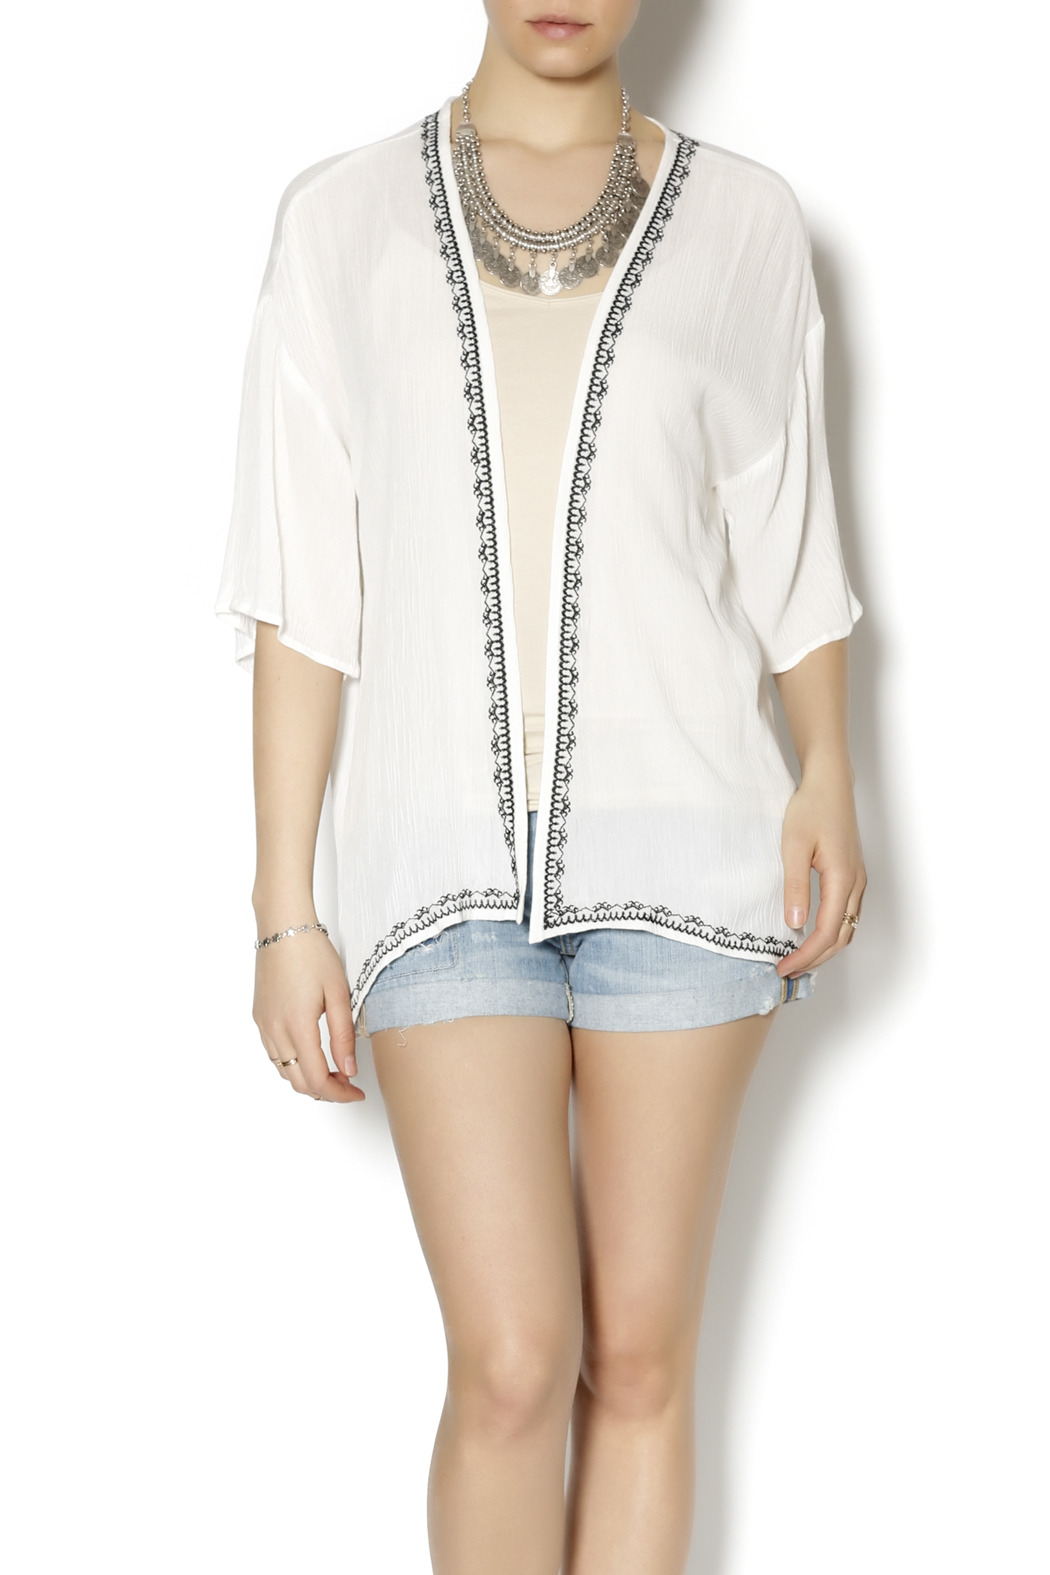 Blu Pepper Woven Open Cardi - Front Cropped Image